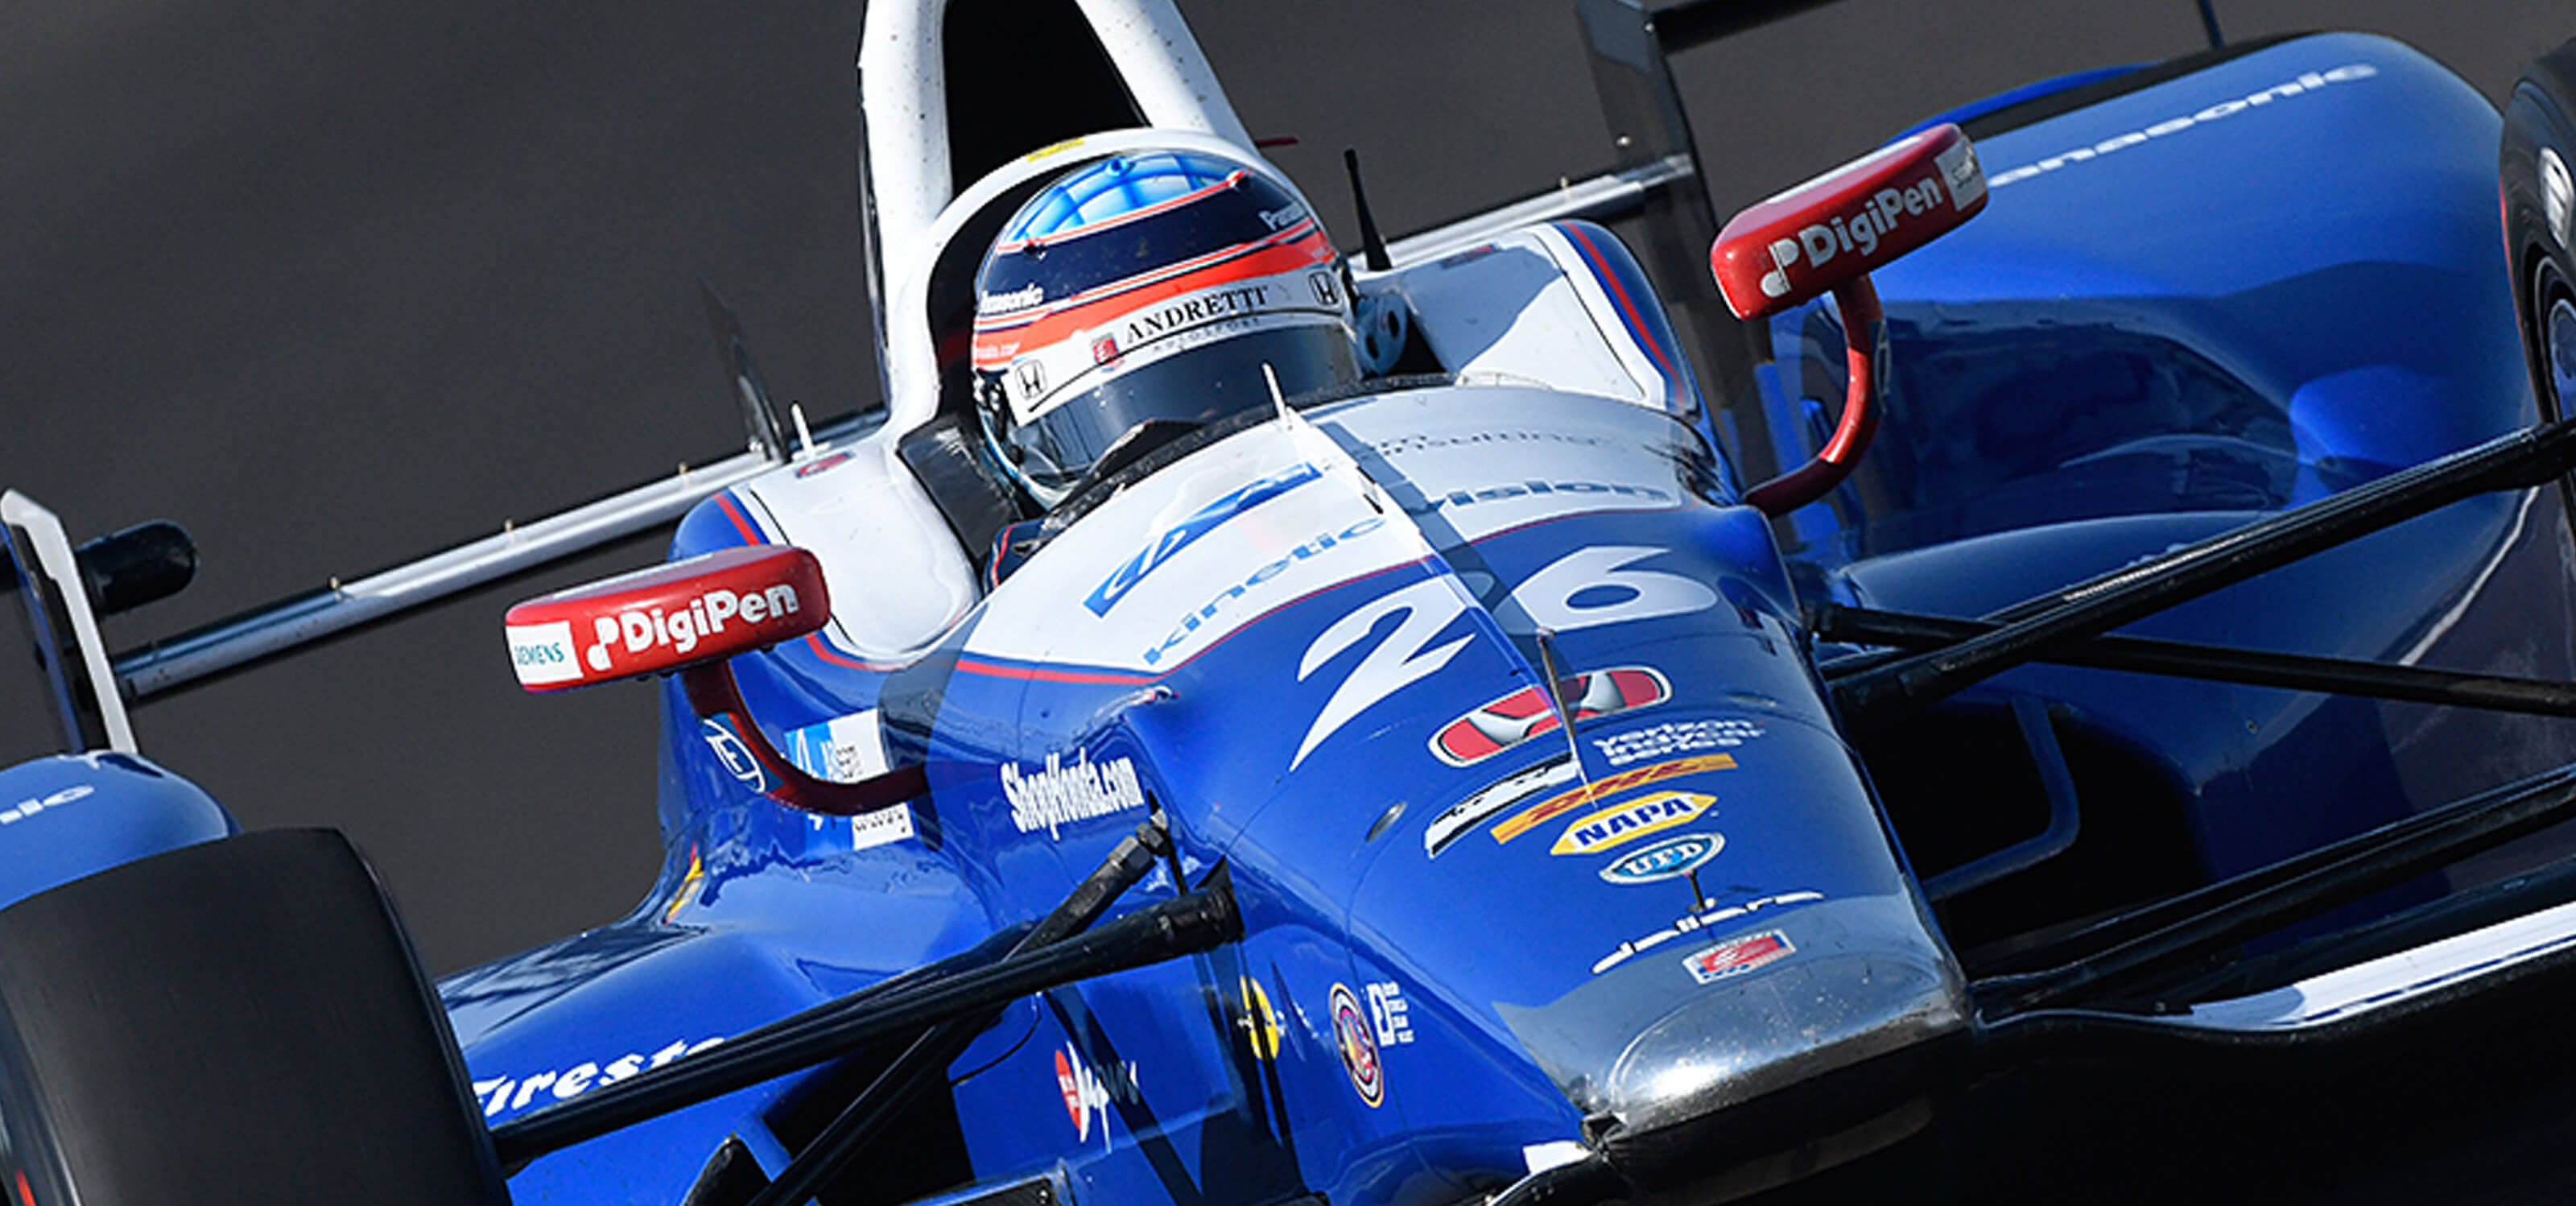 Takumo Sato driving an Indy car featuring the DigiPen logo